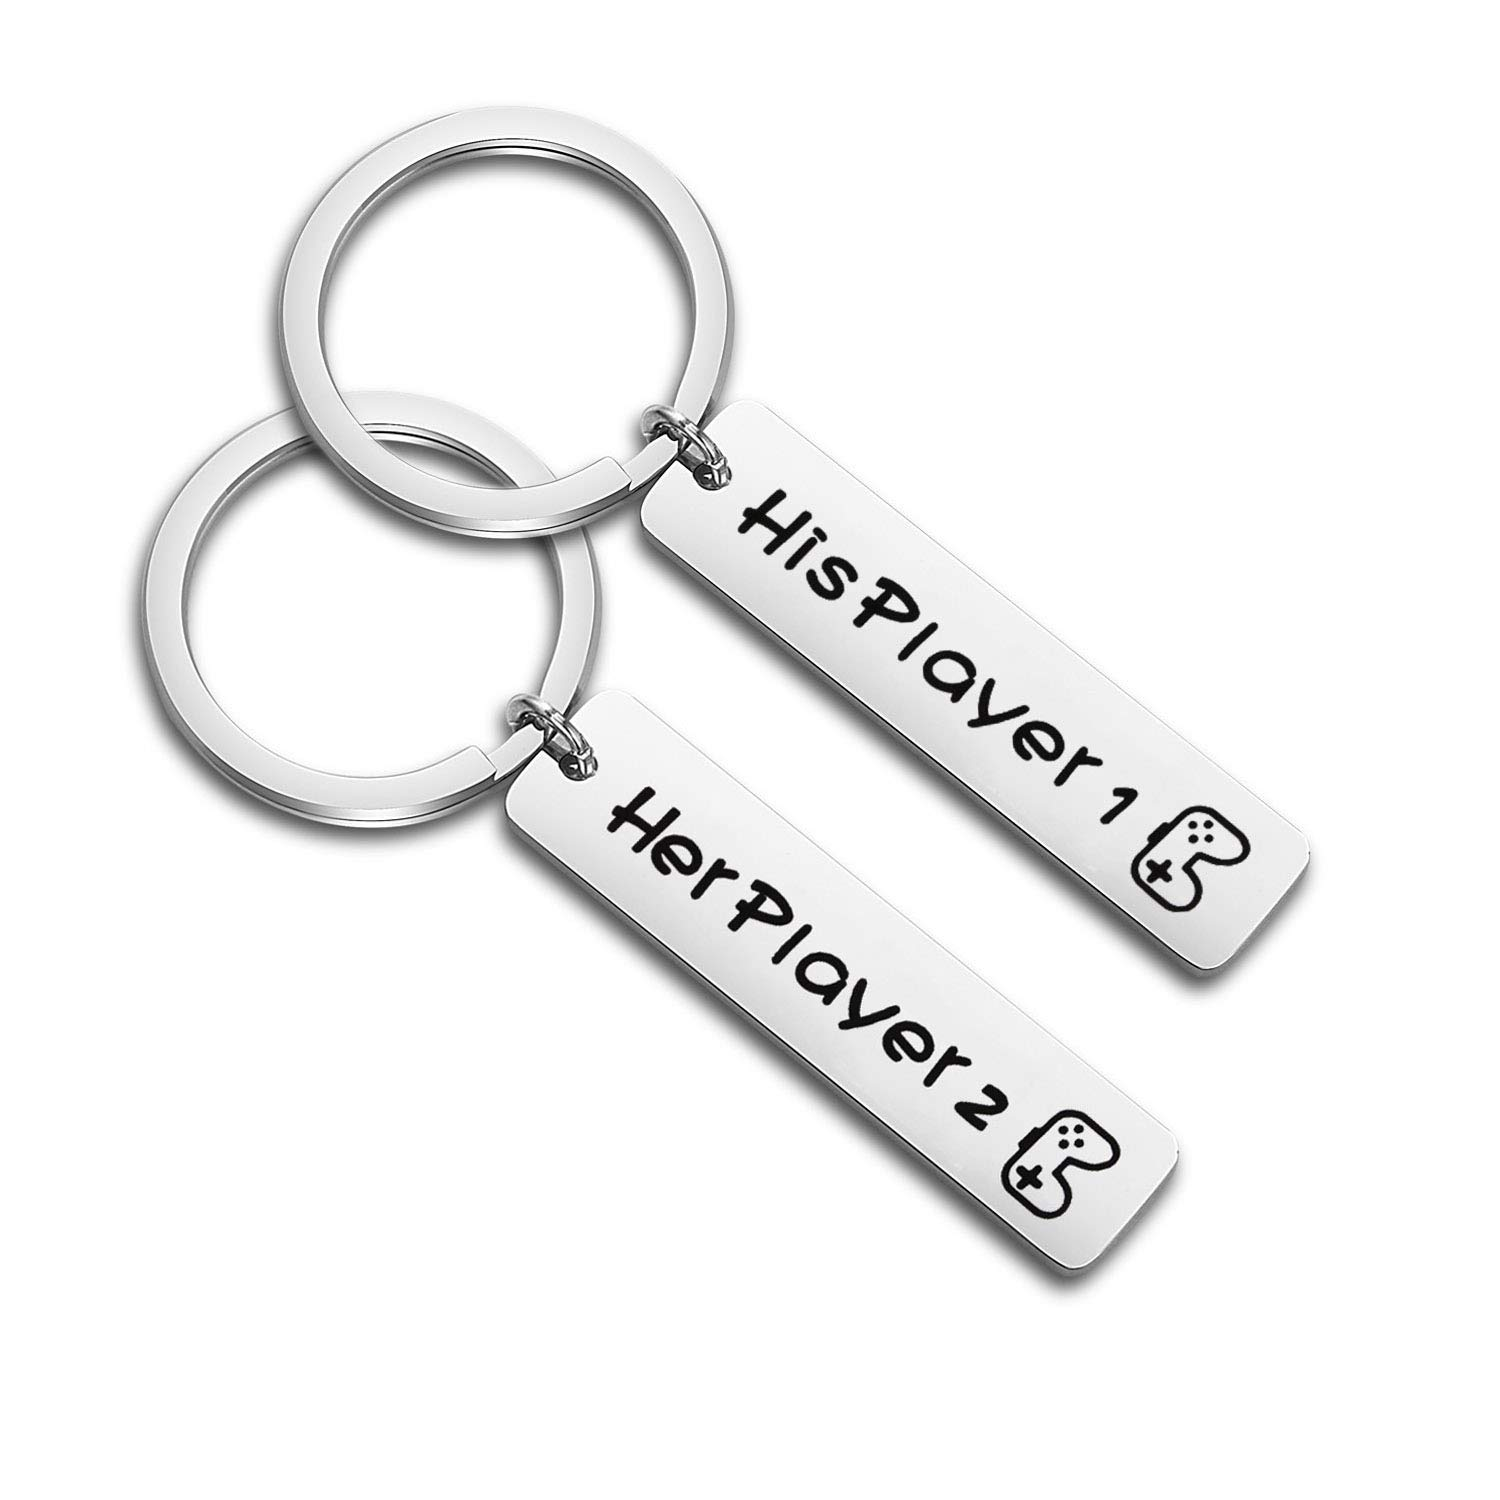 Gamer Couple Keychain Set His Player 1 Her Player 2 Bar Pendant Key Ring KUIYAI